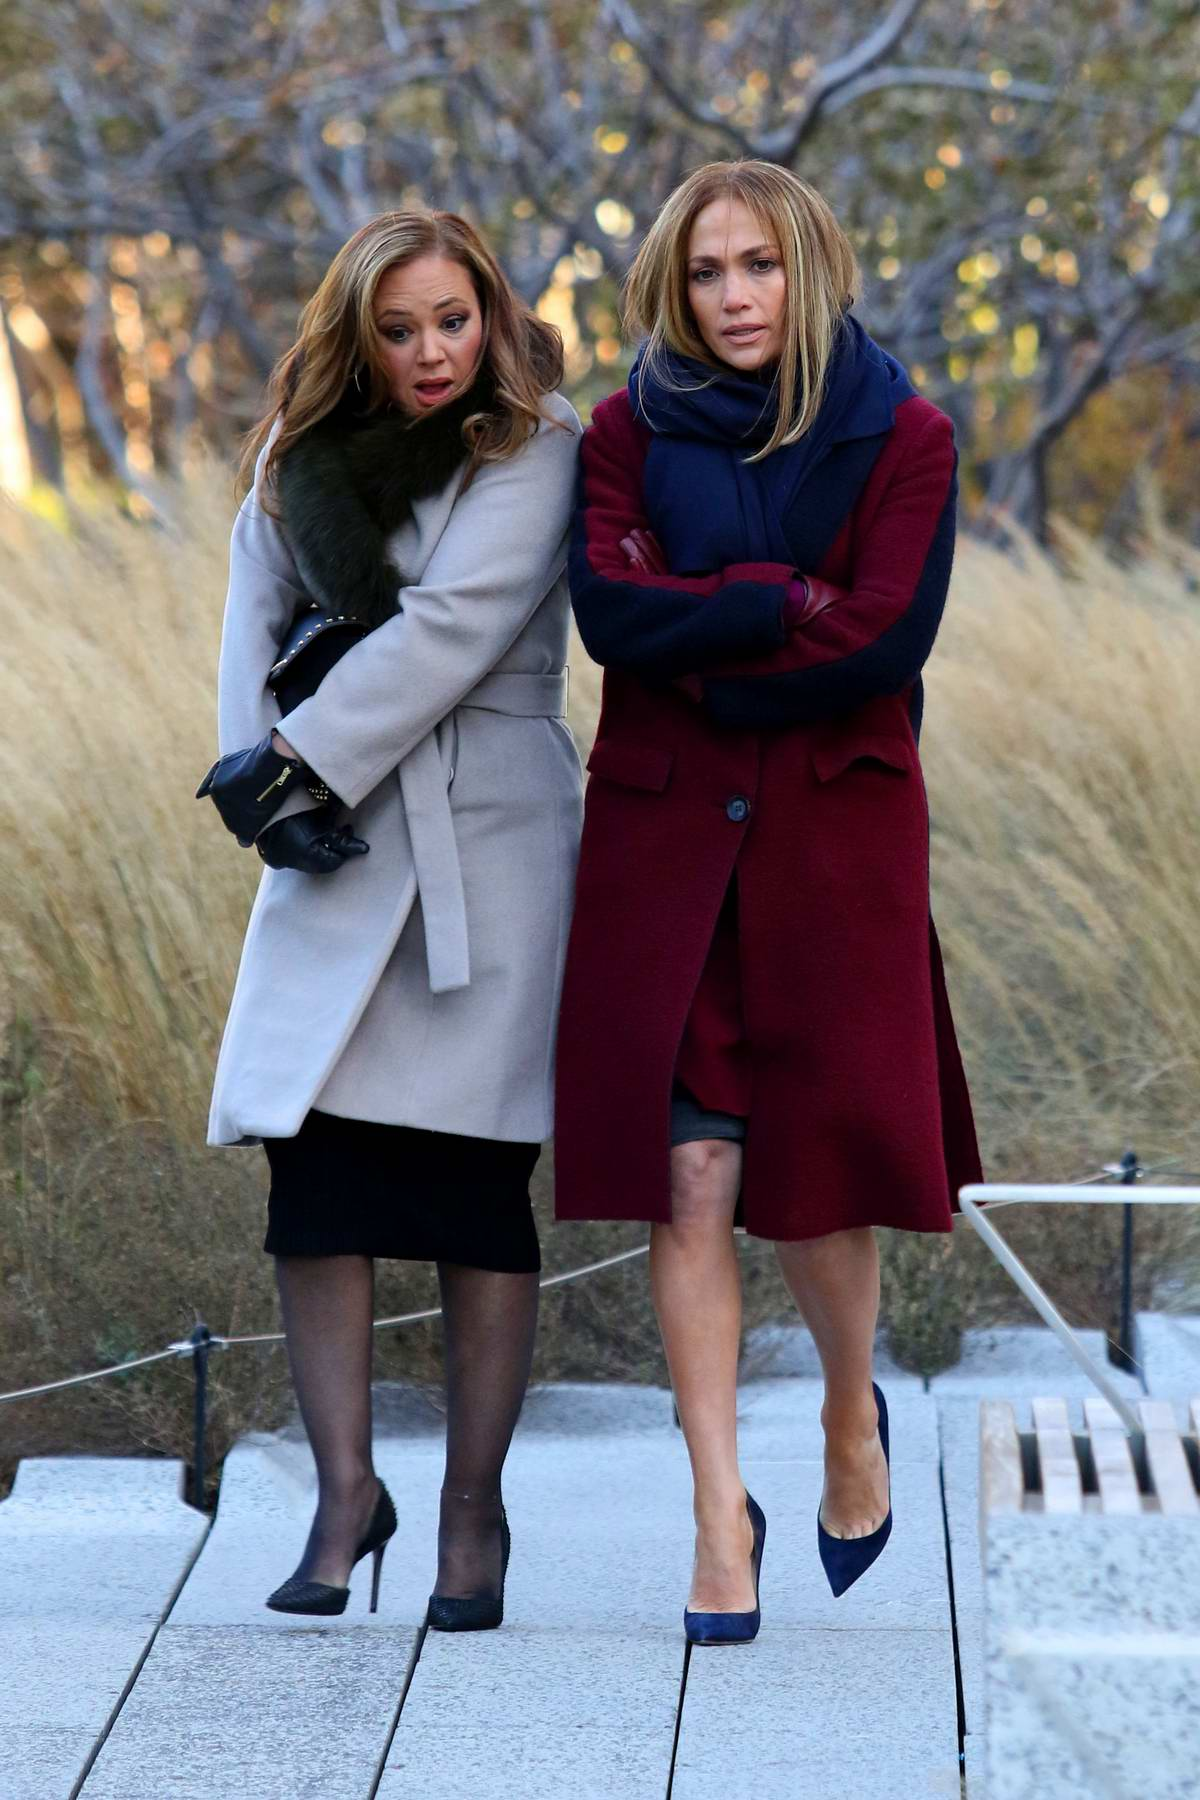 Jennifer Lopez and Leah Remini filming 'Second Act' in the highline in New York City